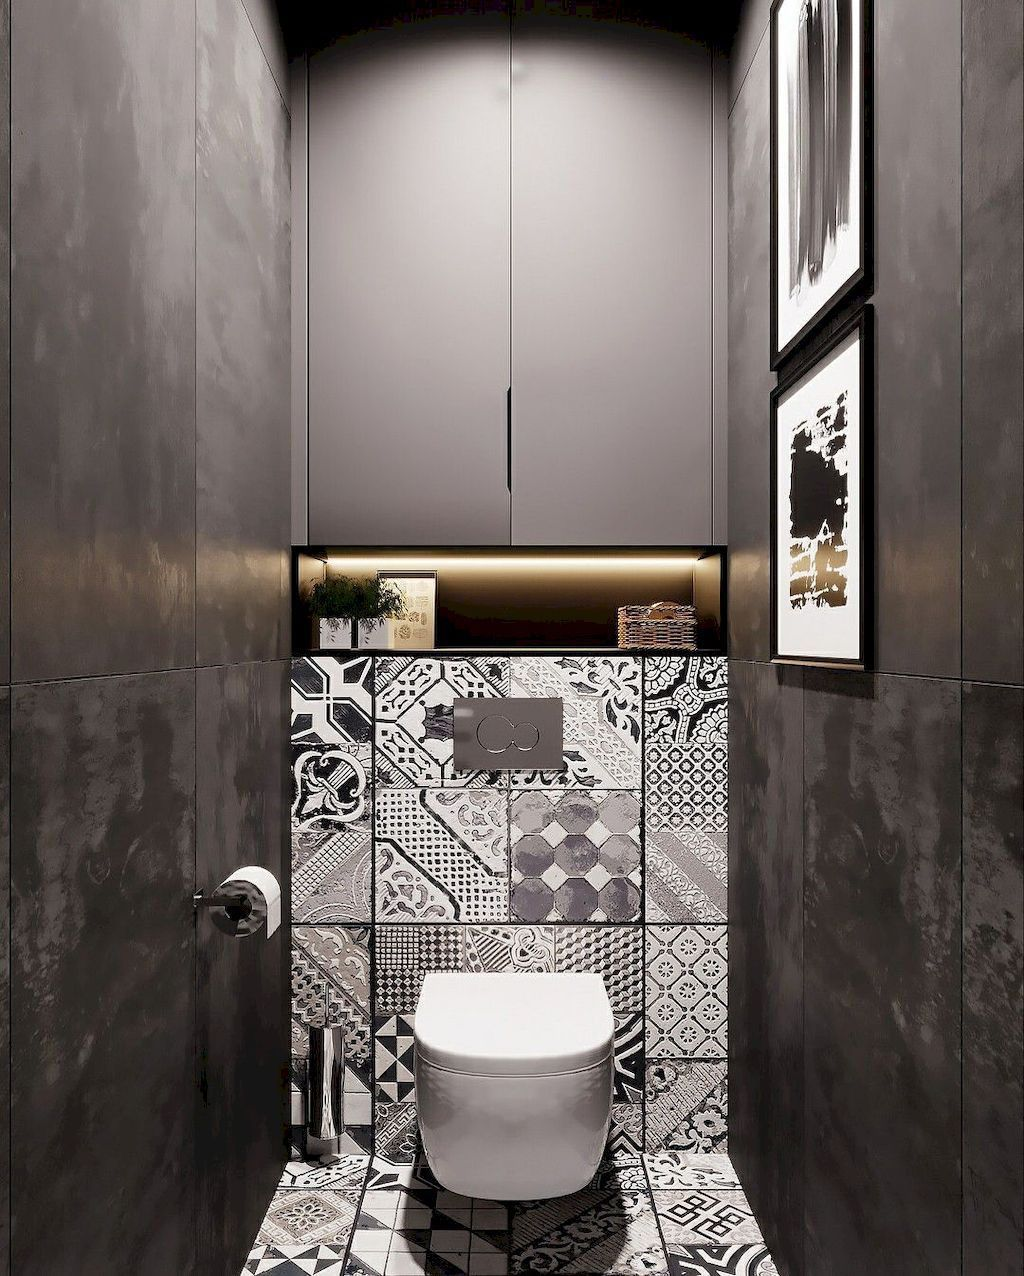 Surprising Extremely Small Bathroom Ideas You Ll Love Extremelysmallbathroomideas Small Toilet Design Small Space Bathroom Restroom Design